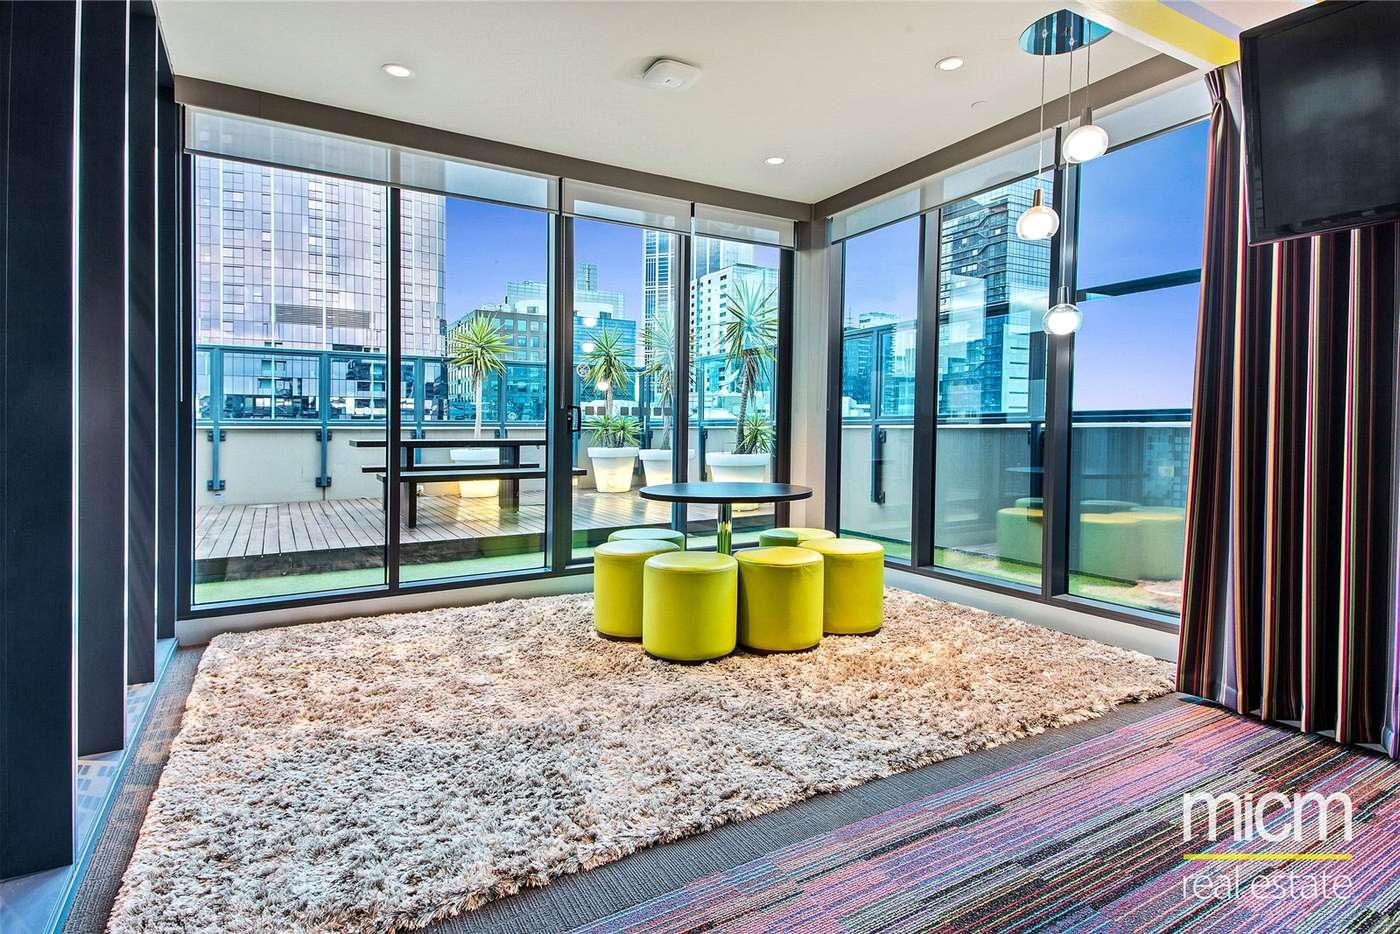 Seventh view of Homely studio listing, 306/181 ABeckett Street, Melbourne VIC 3000